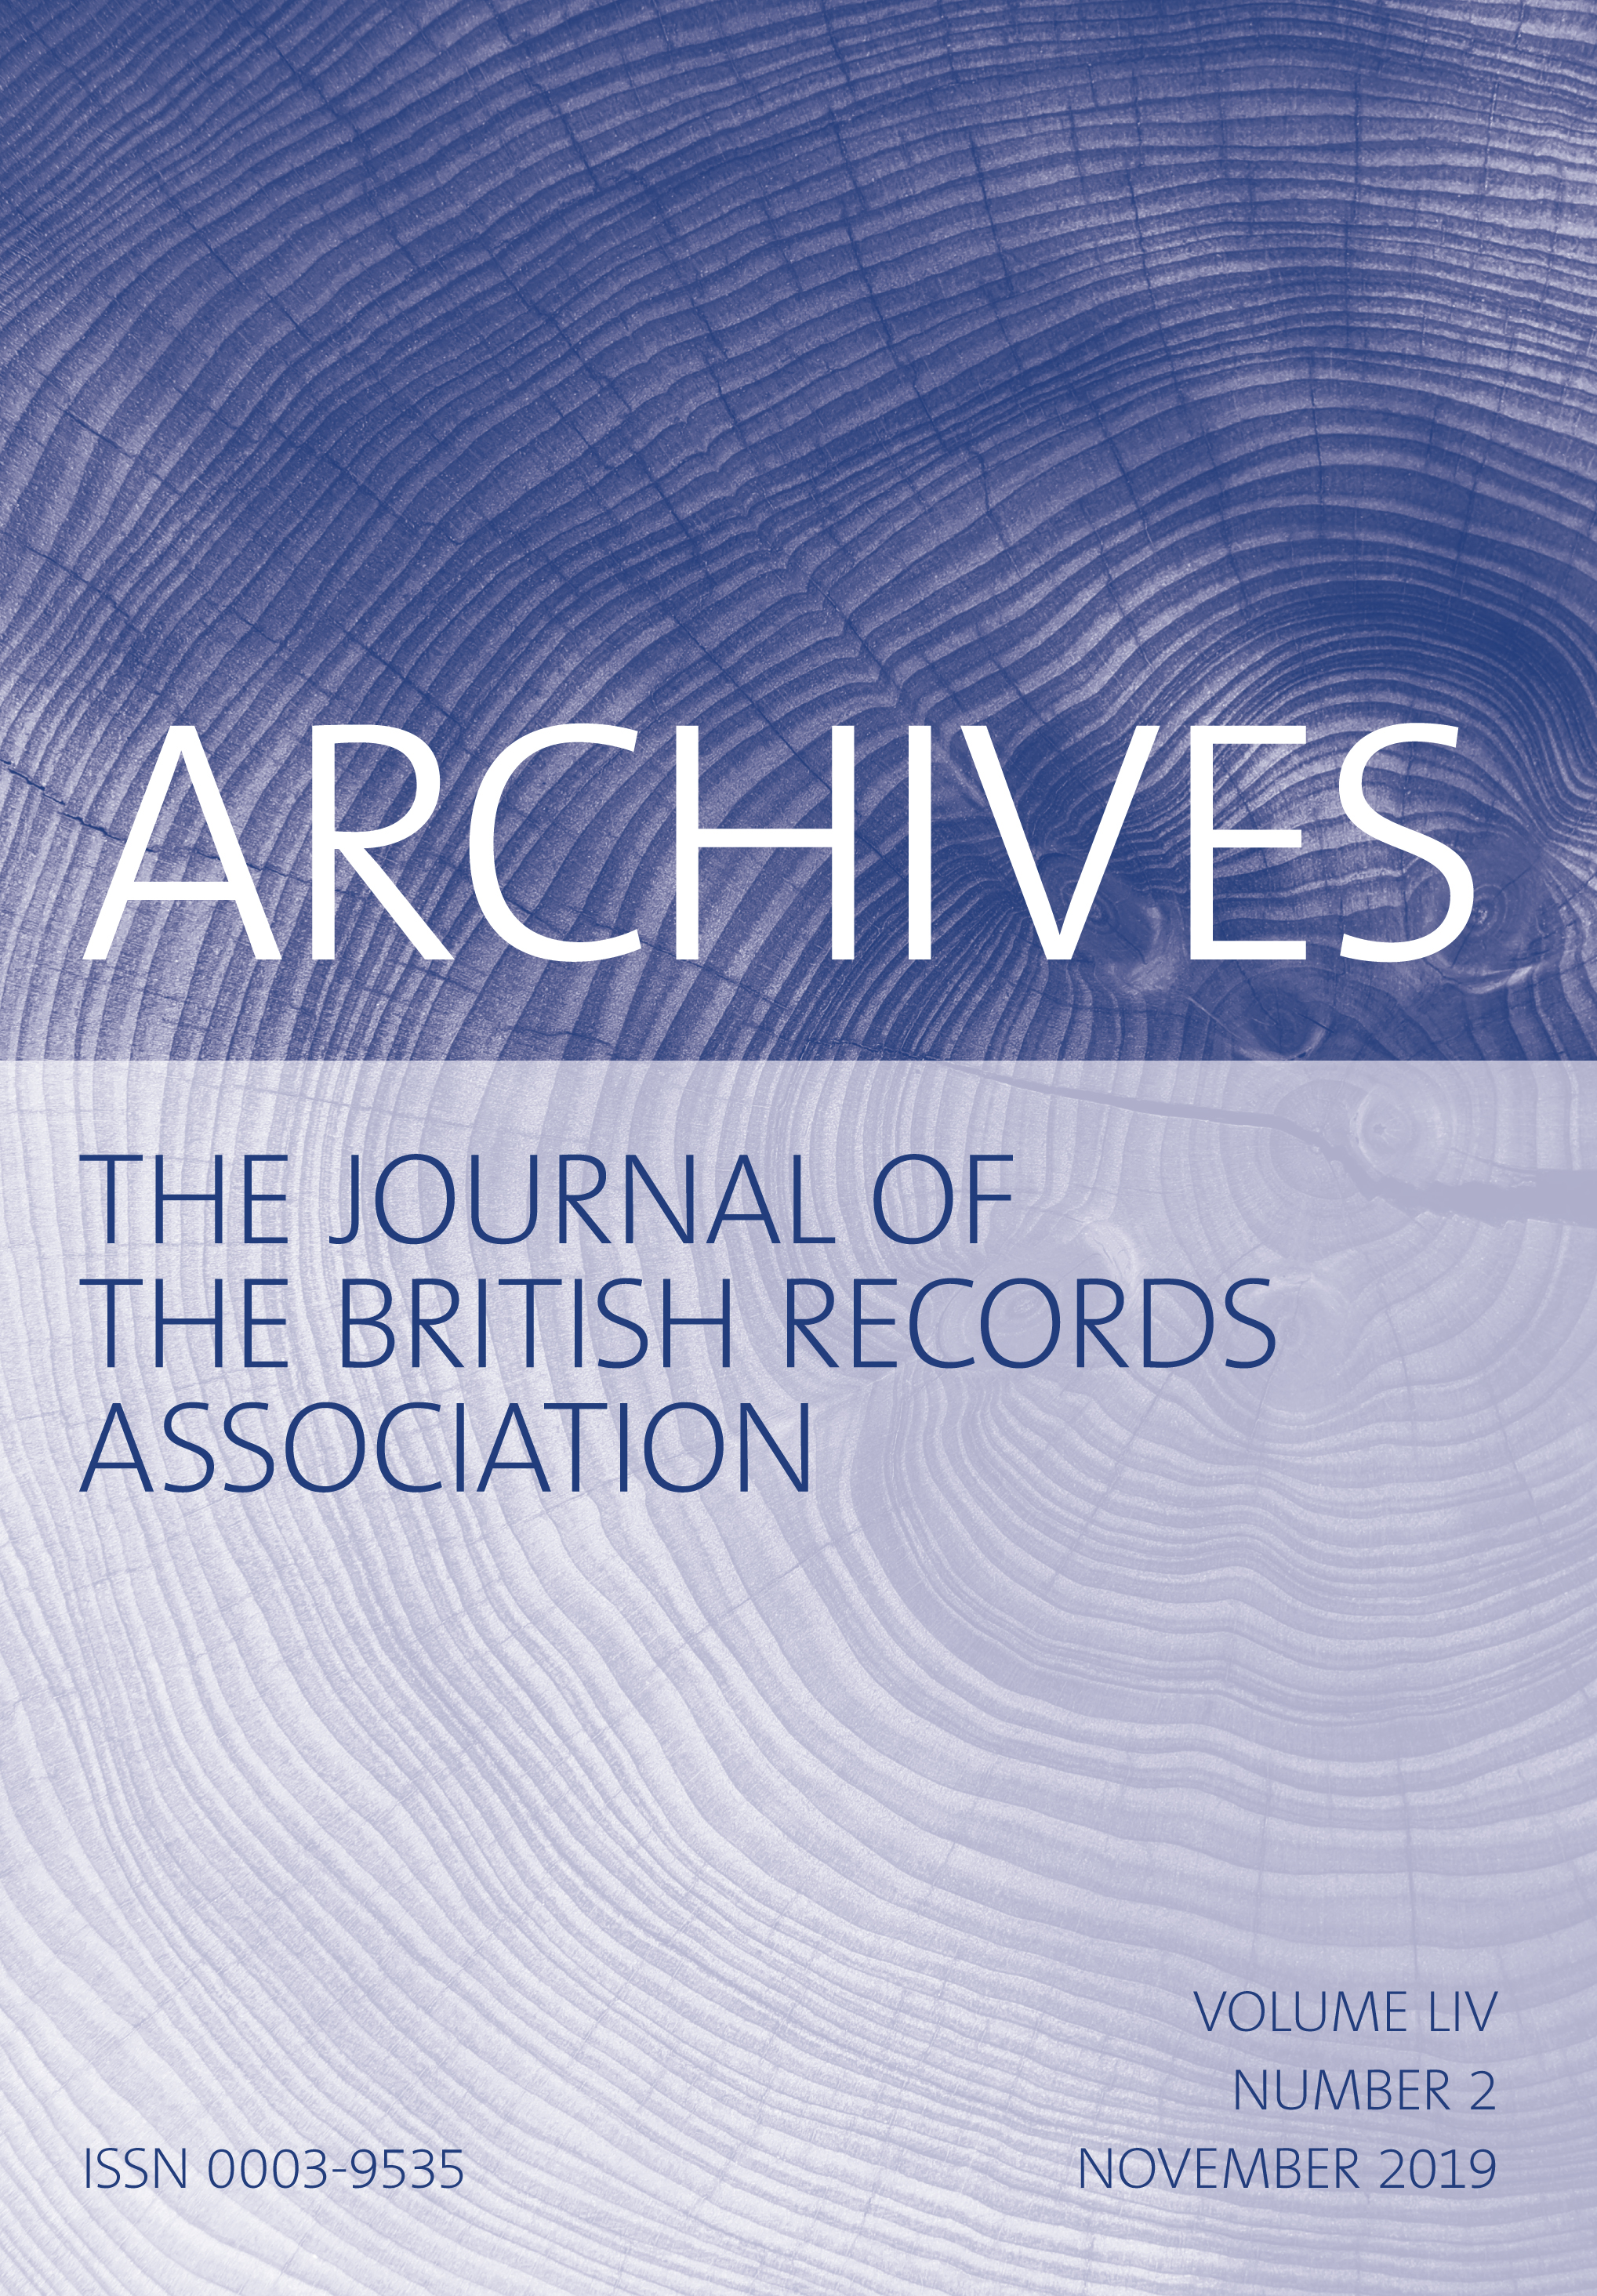 Archives: The Journal of the British Records Association